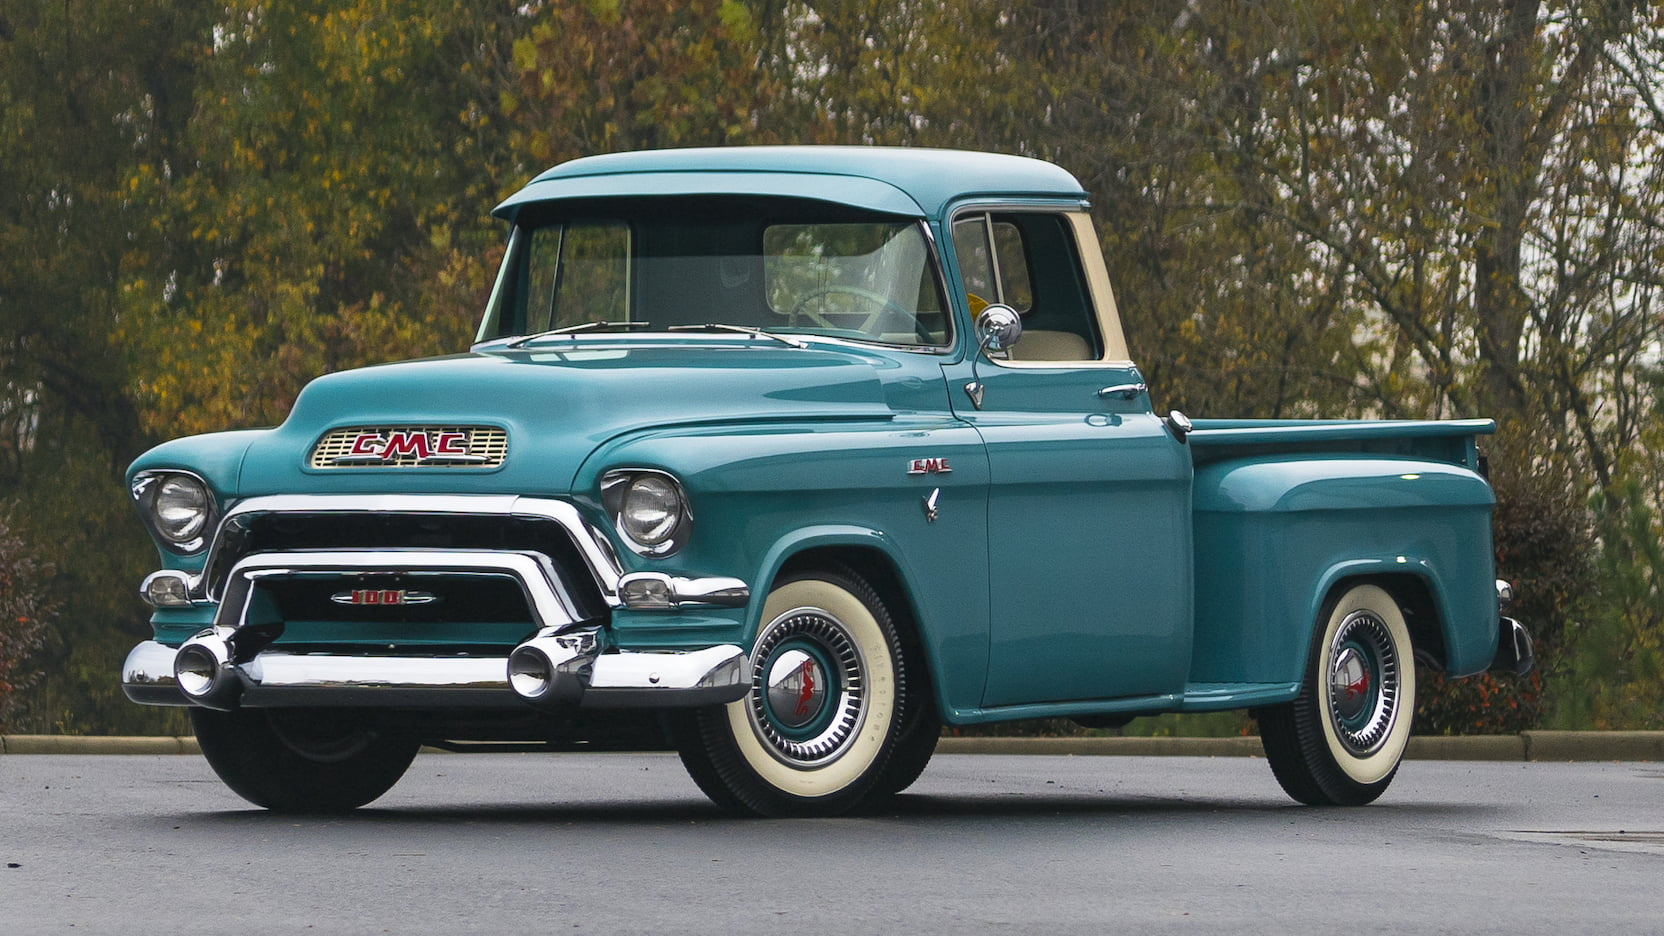 1956 GMC Series 100 front 3/4 teal pontiac engine